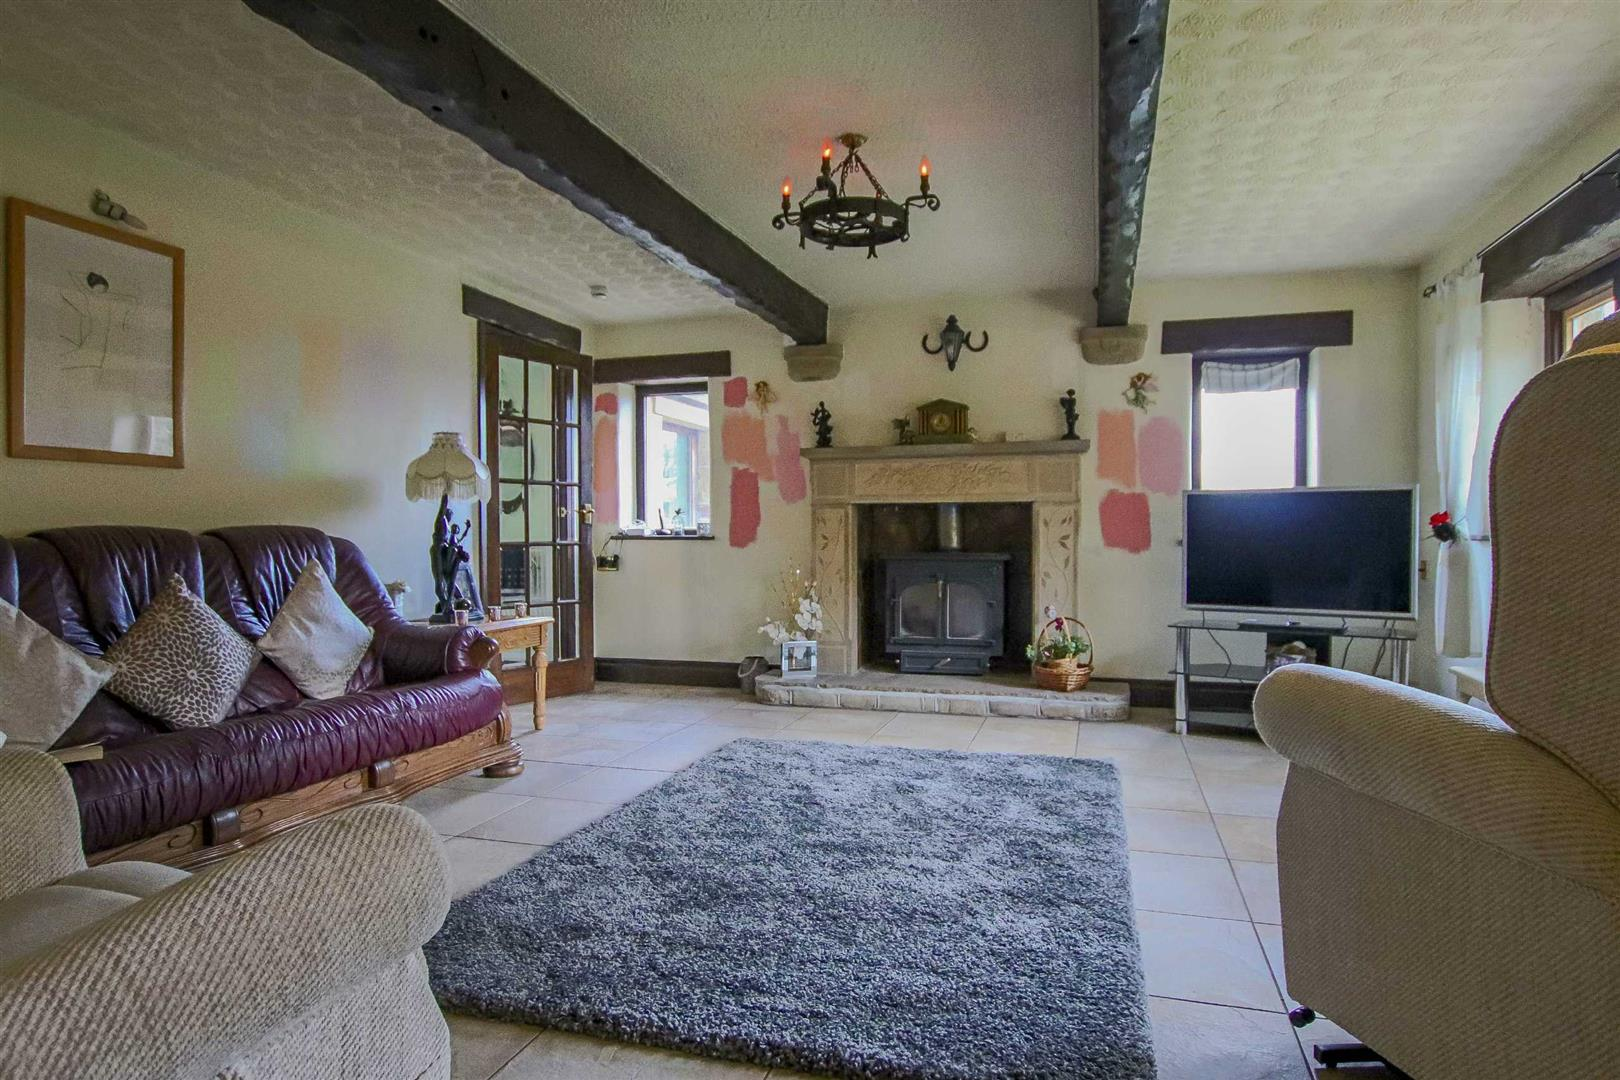 9 Bedroom Barn Conversion For Sale - Image 17